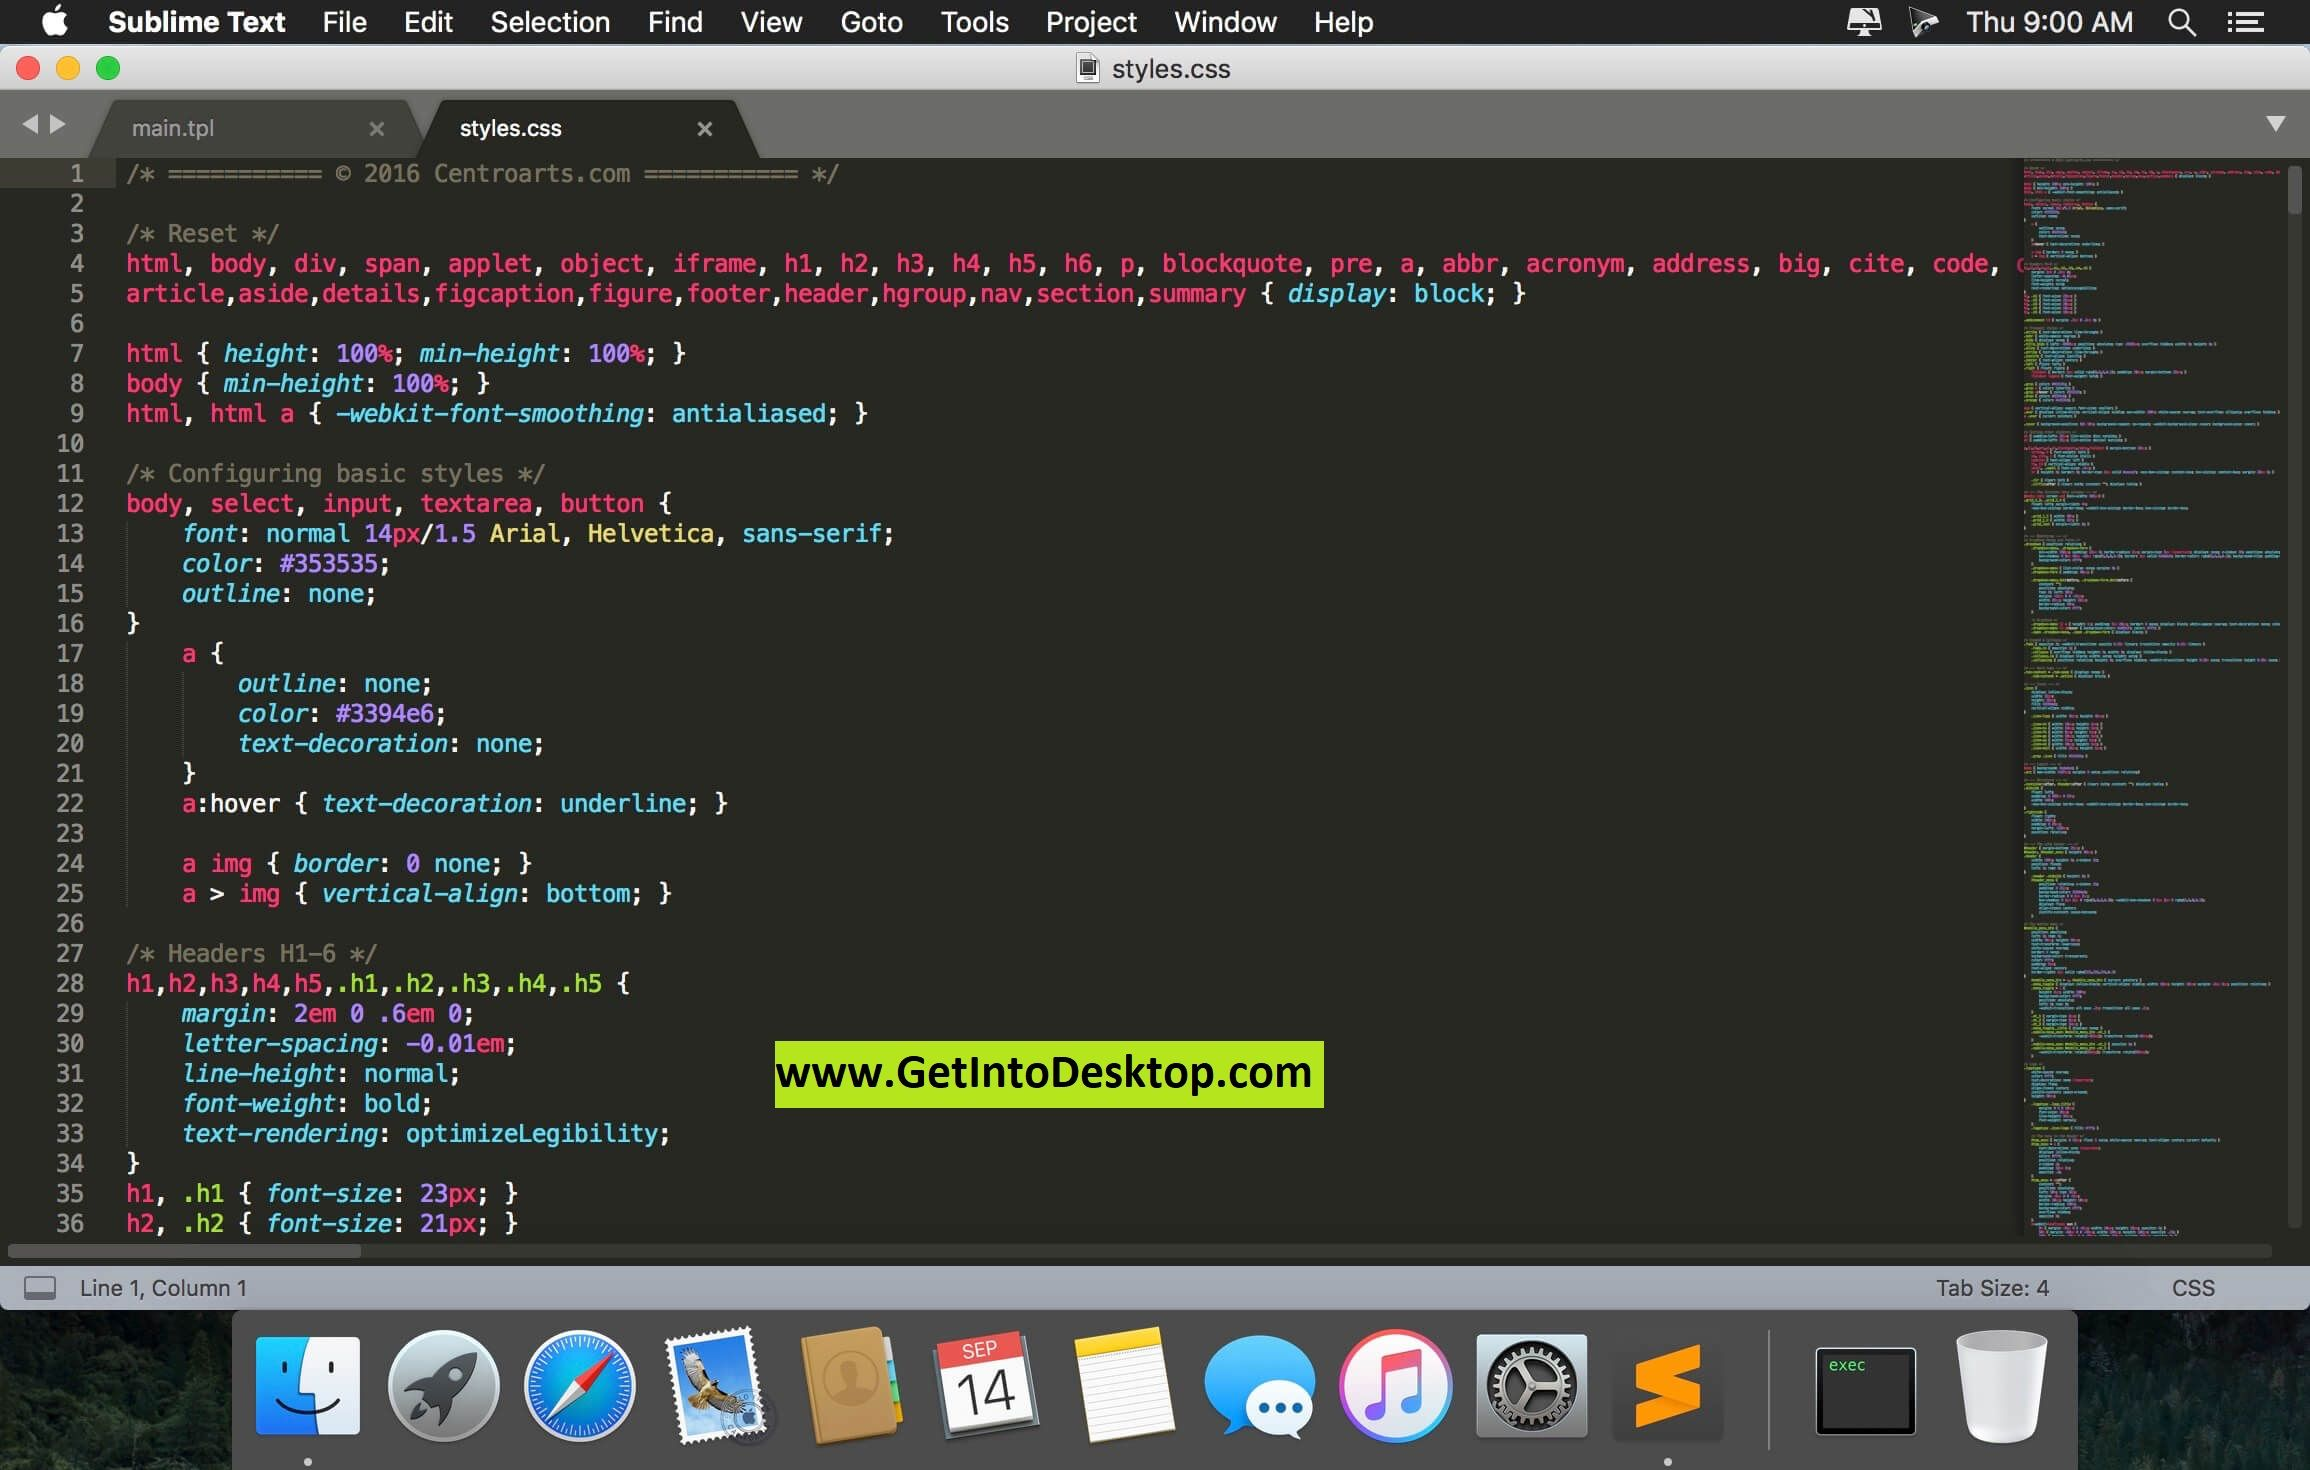 Sublime Text 3 1 1 For Mac OS Free Download - Get Into PC